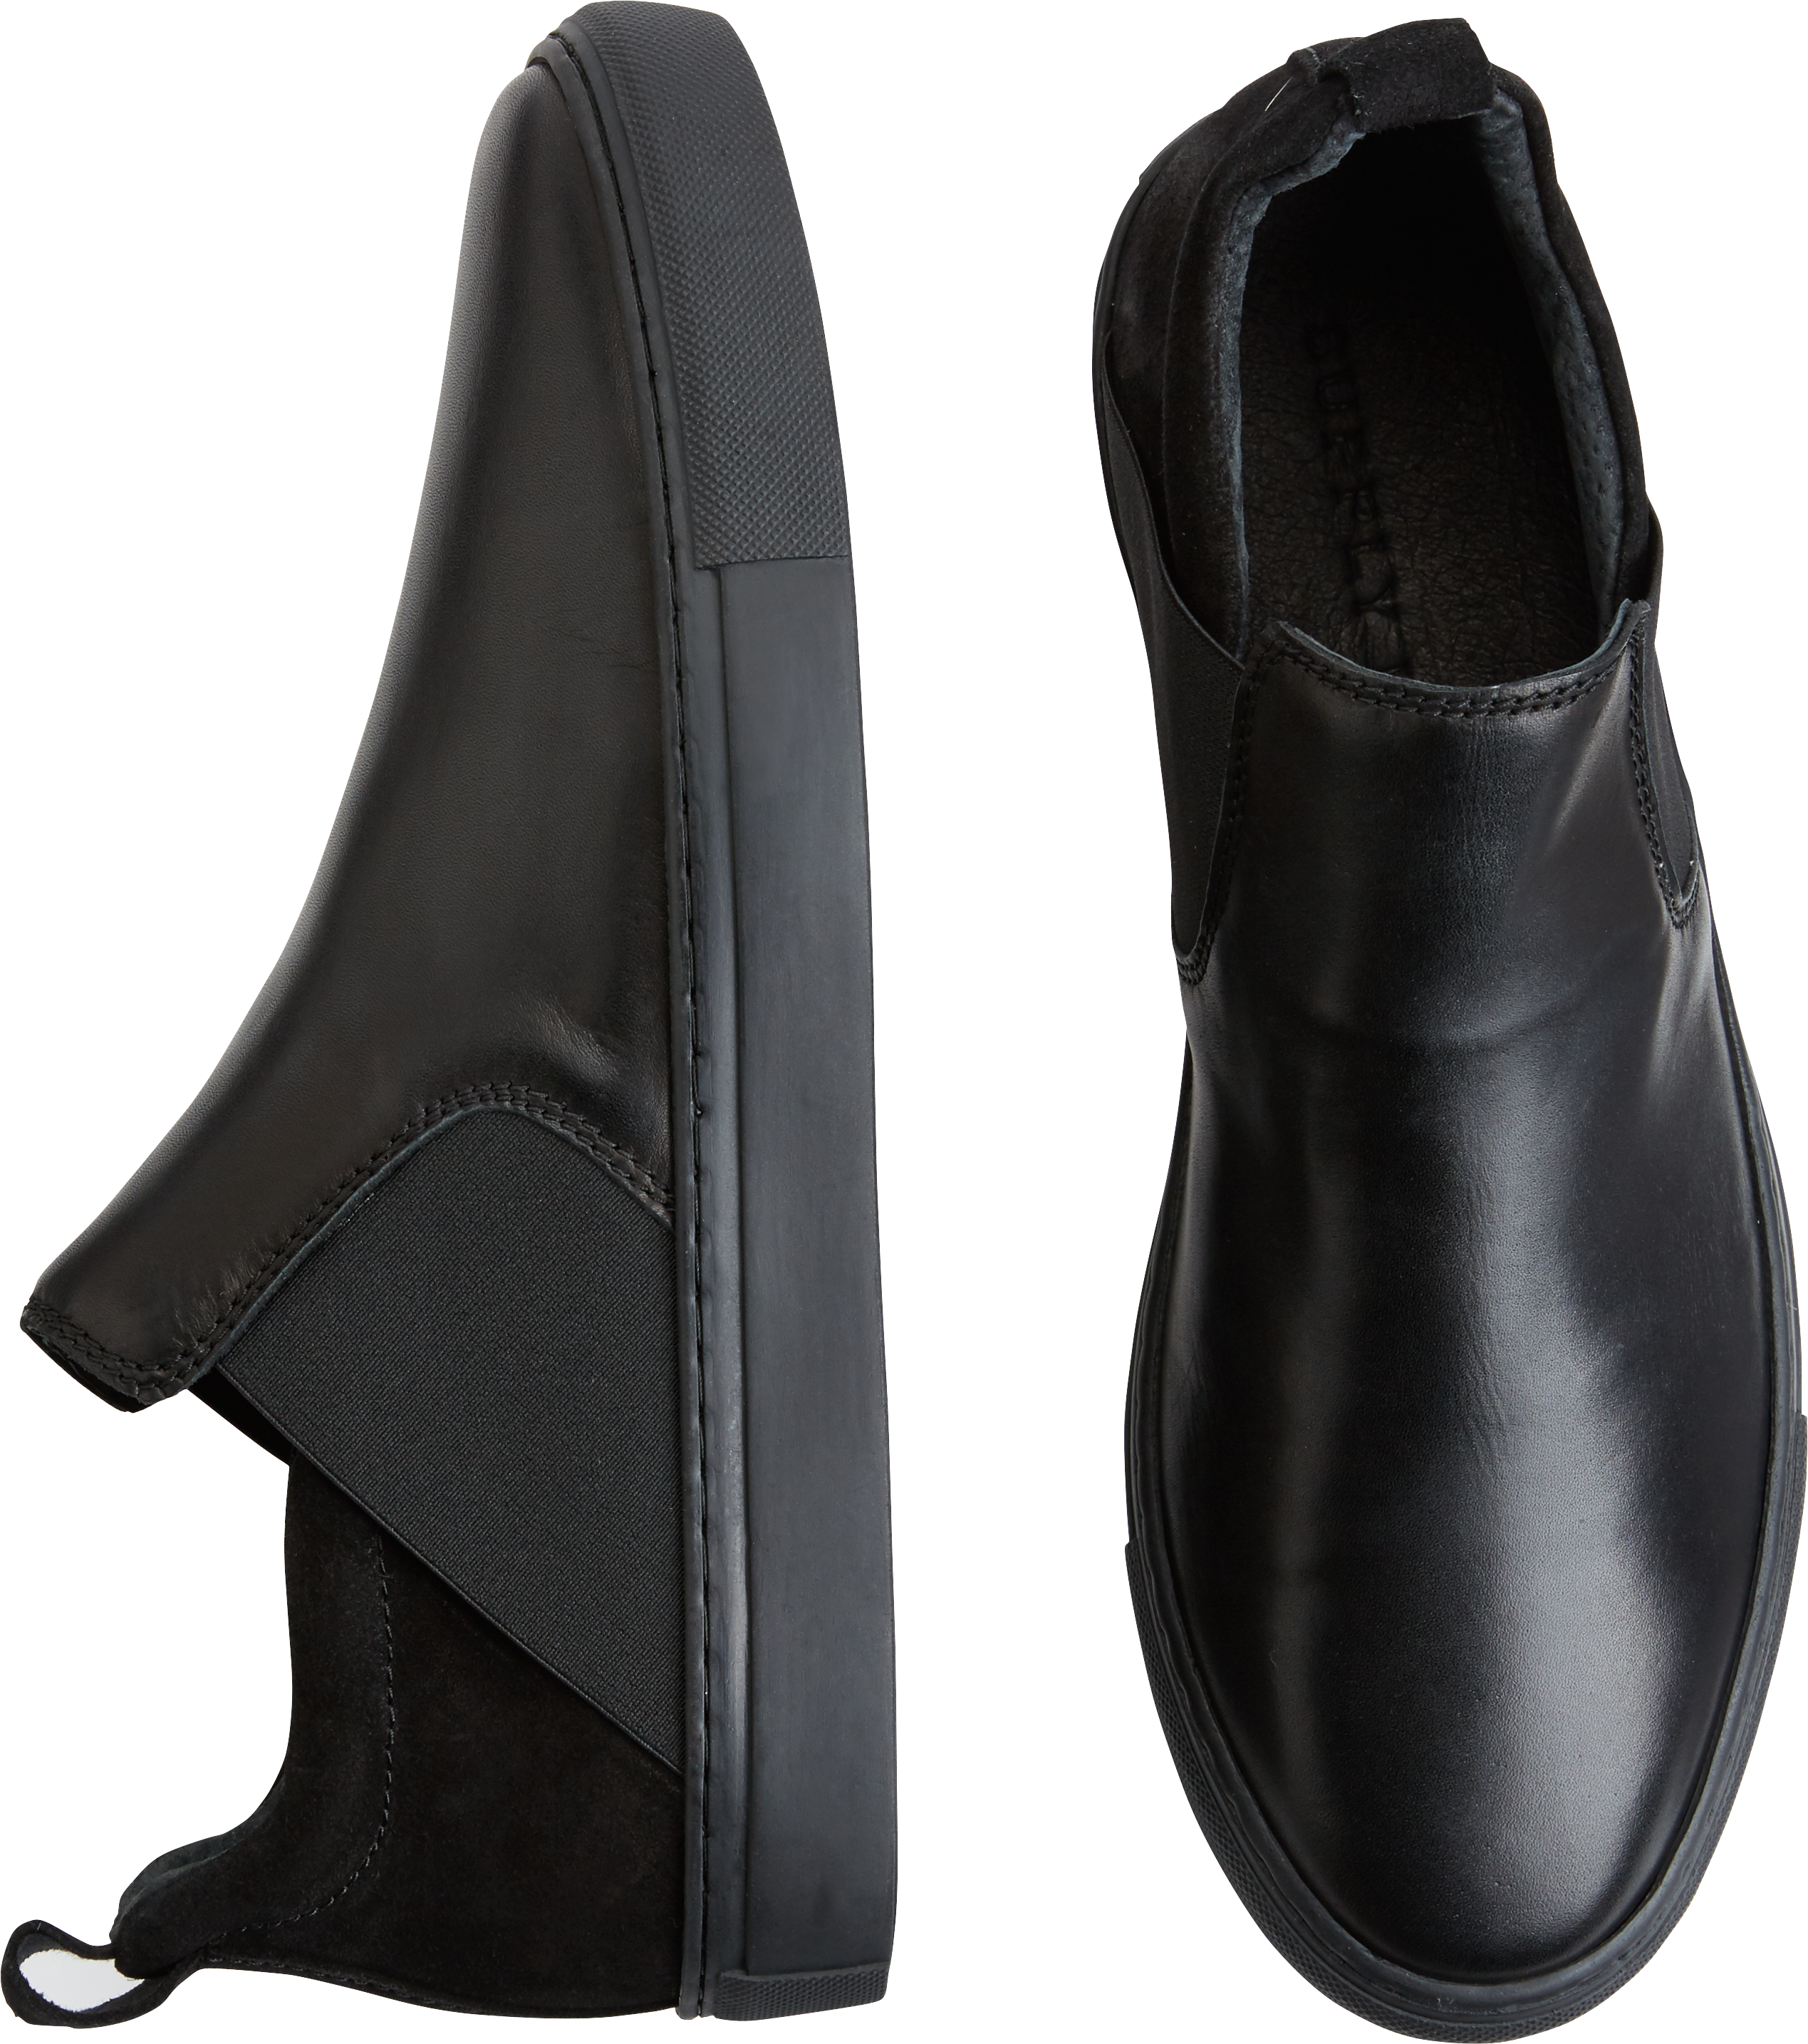 Supply Lab Lance Black Slip-On Sneakers (Black)